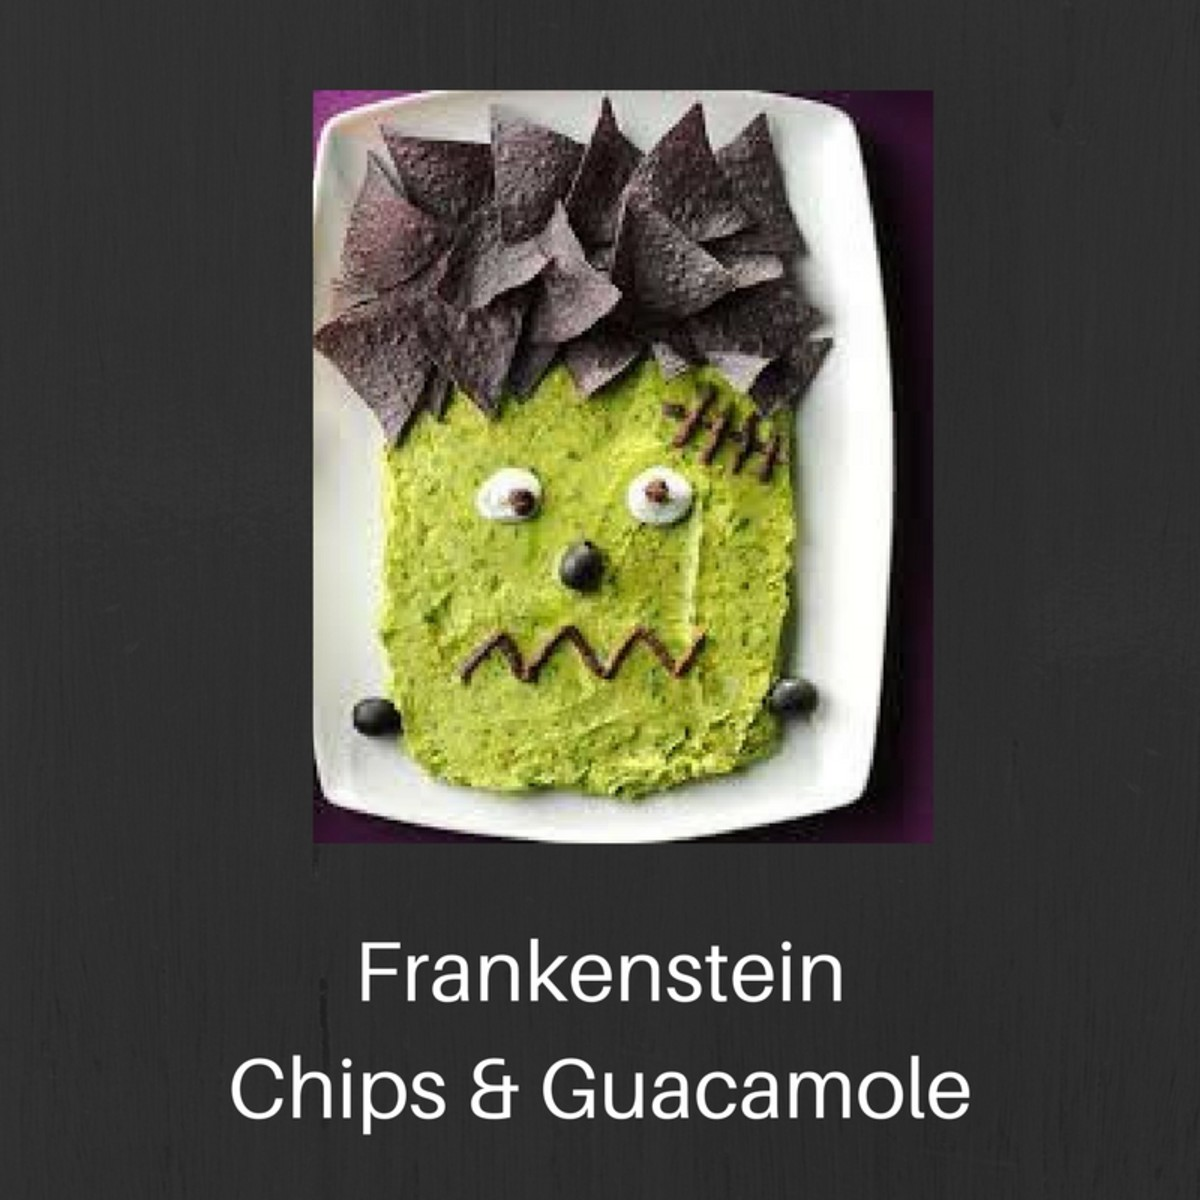 Frankenstein chips and guacamole